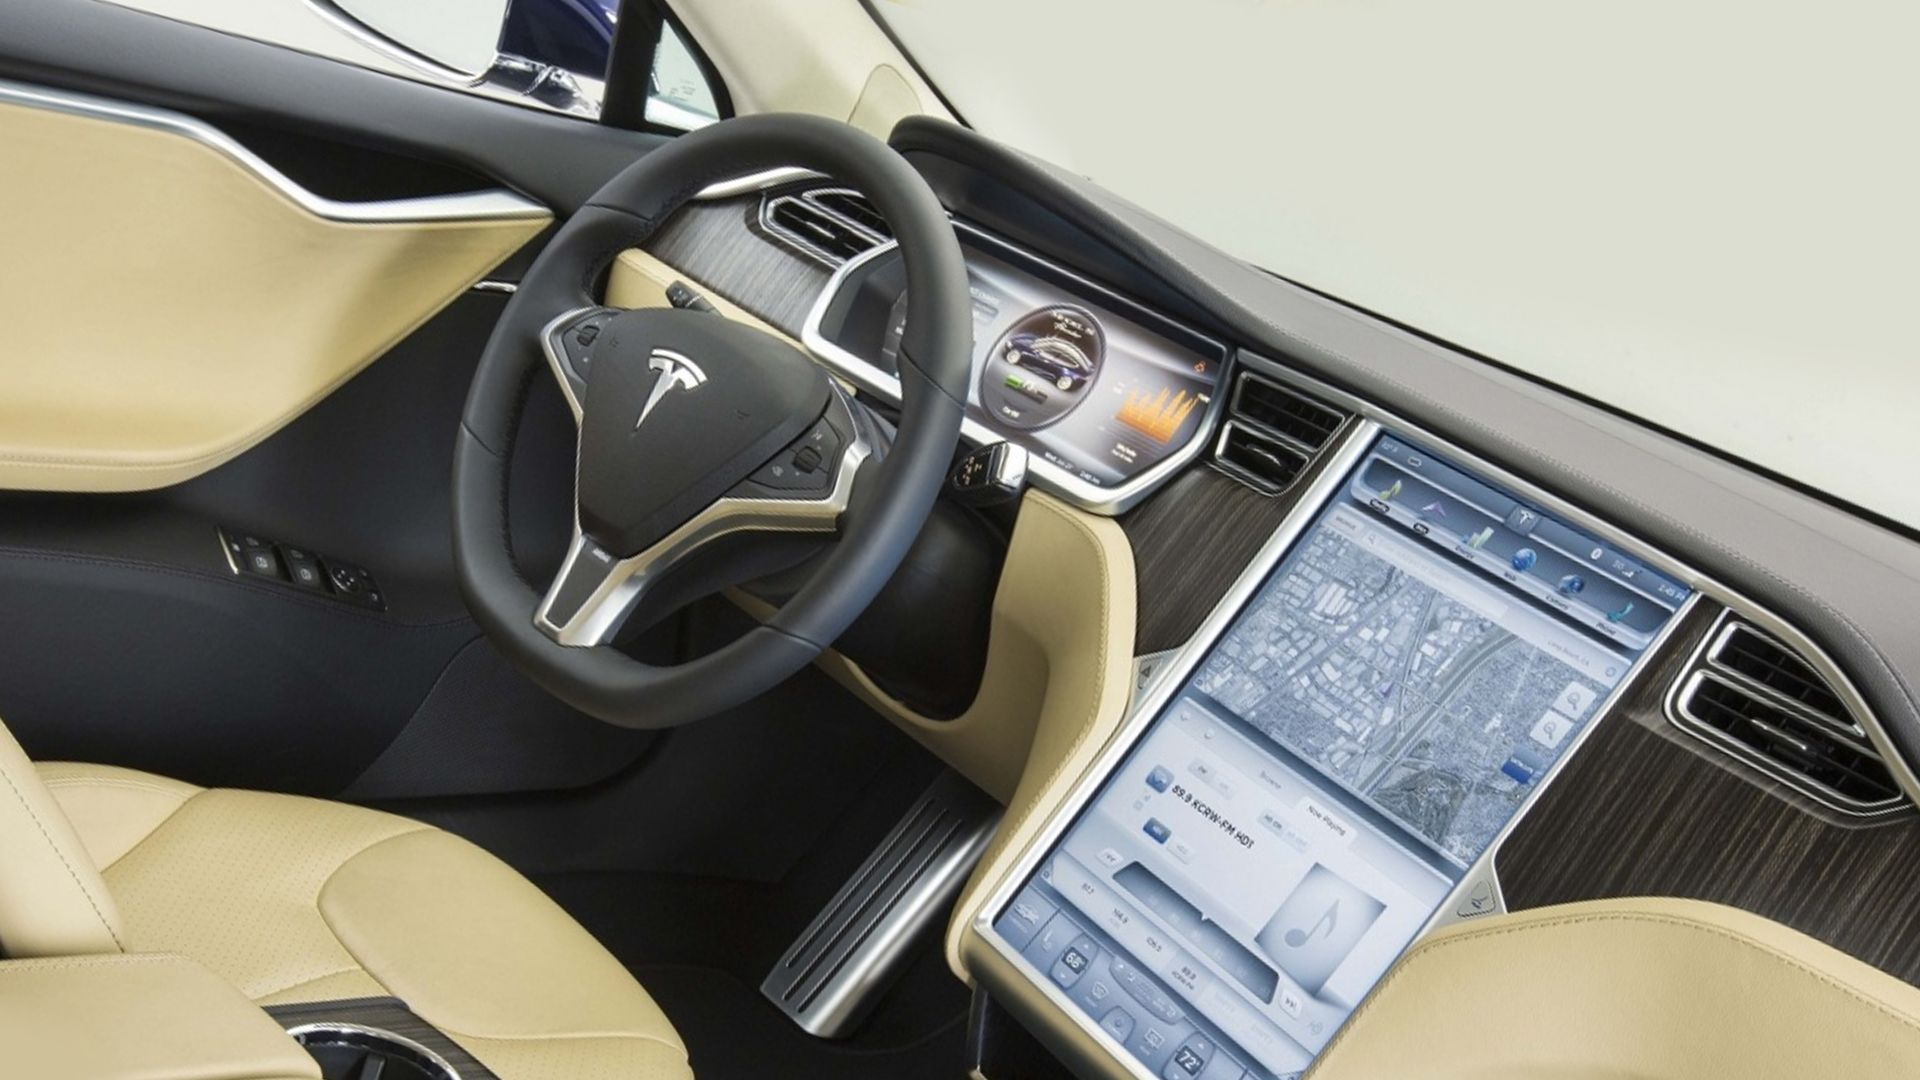 New 2018 Tesla Model S Interior Features